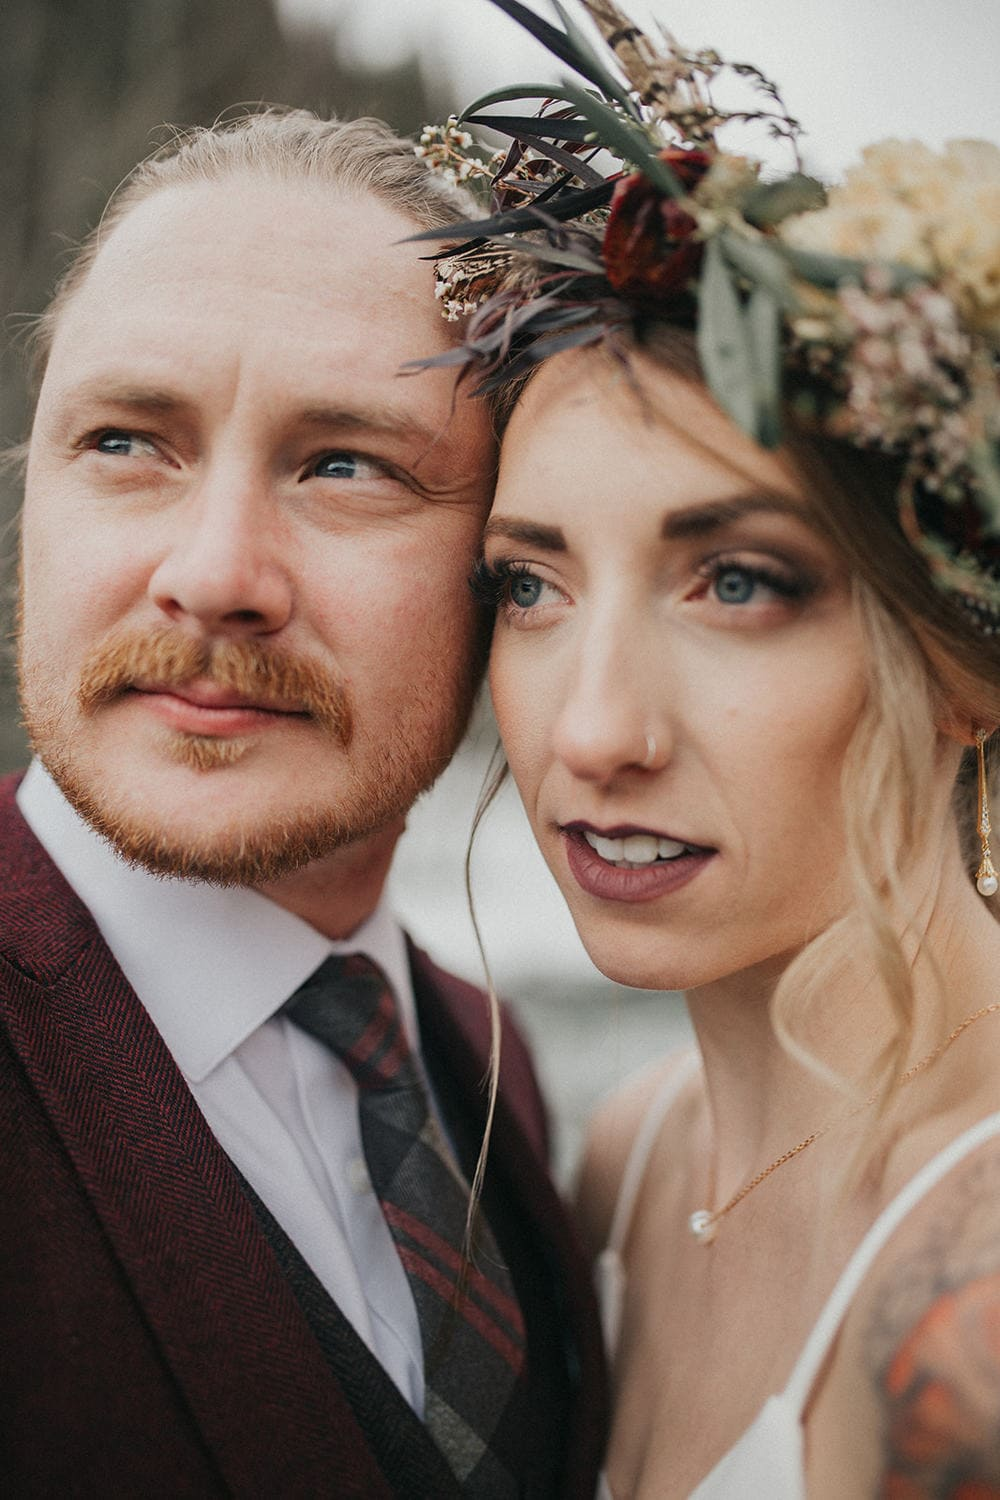 Closeup photo of bride and groom